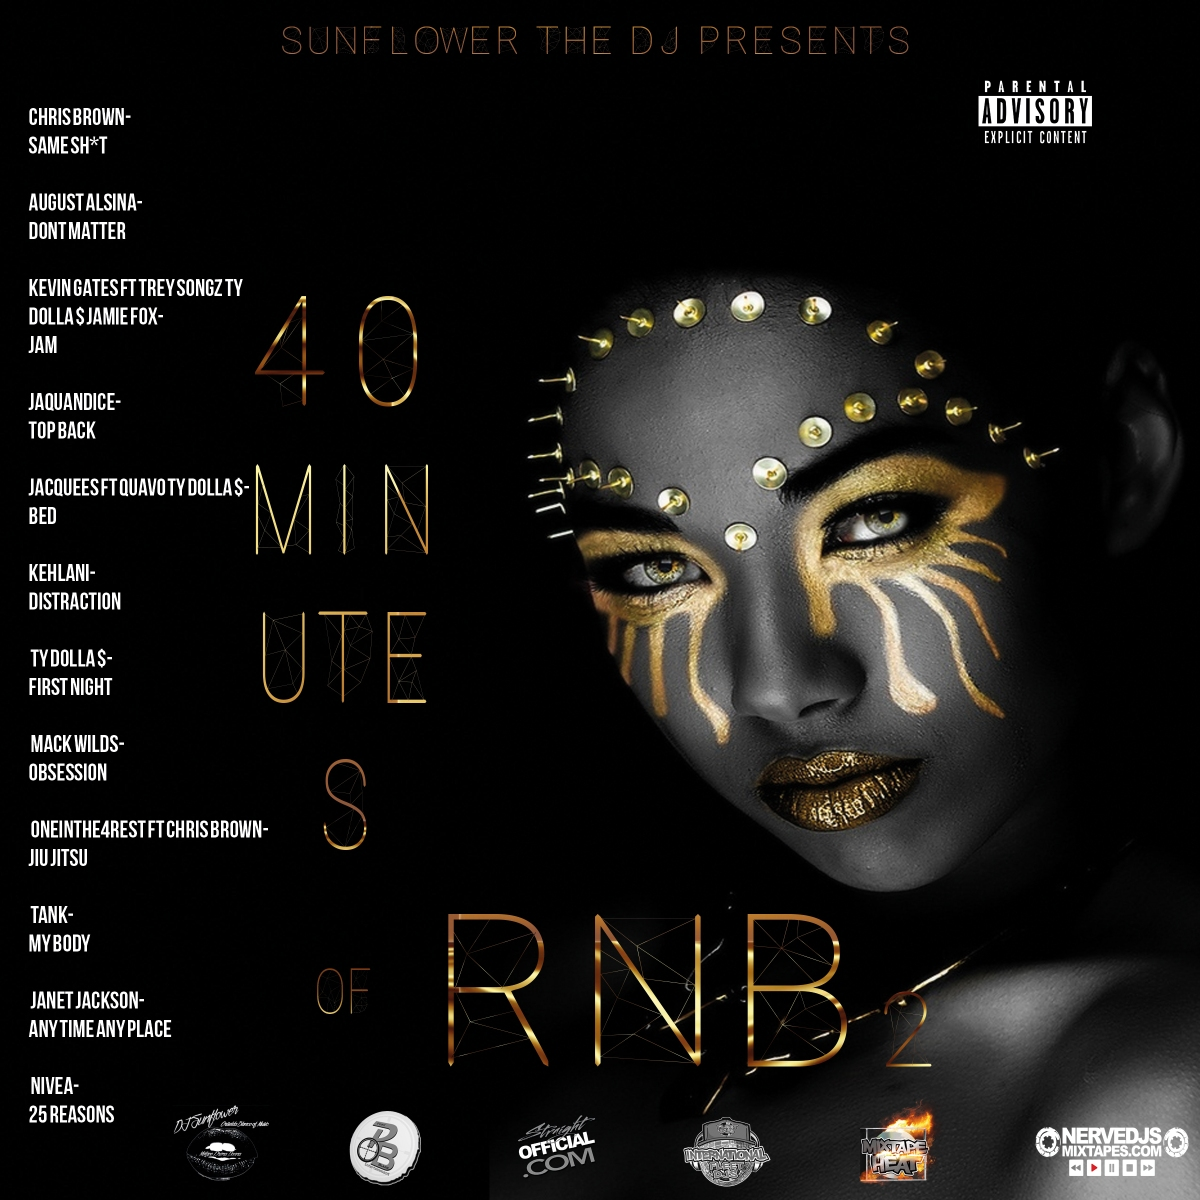 40 MINUTES OF RNB 2